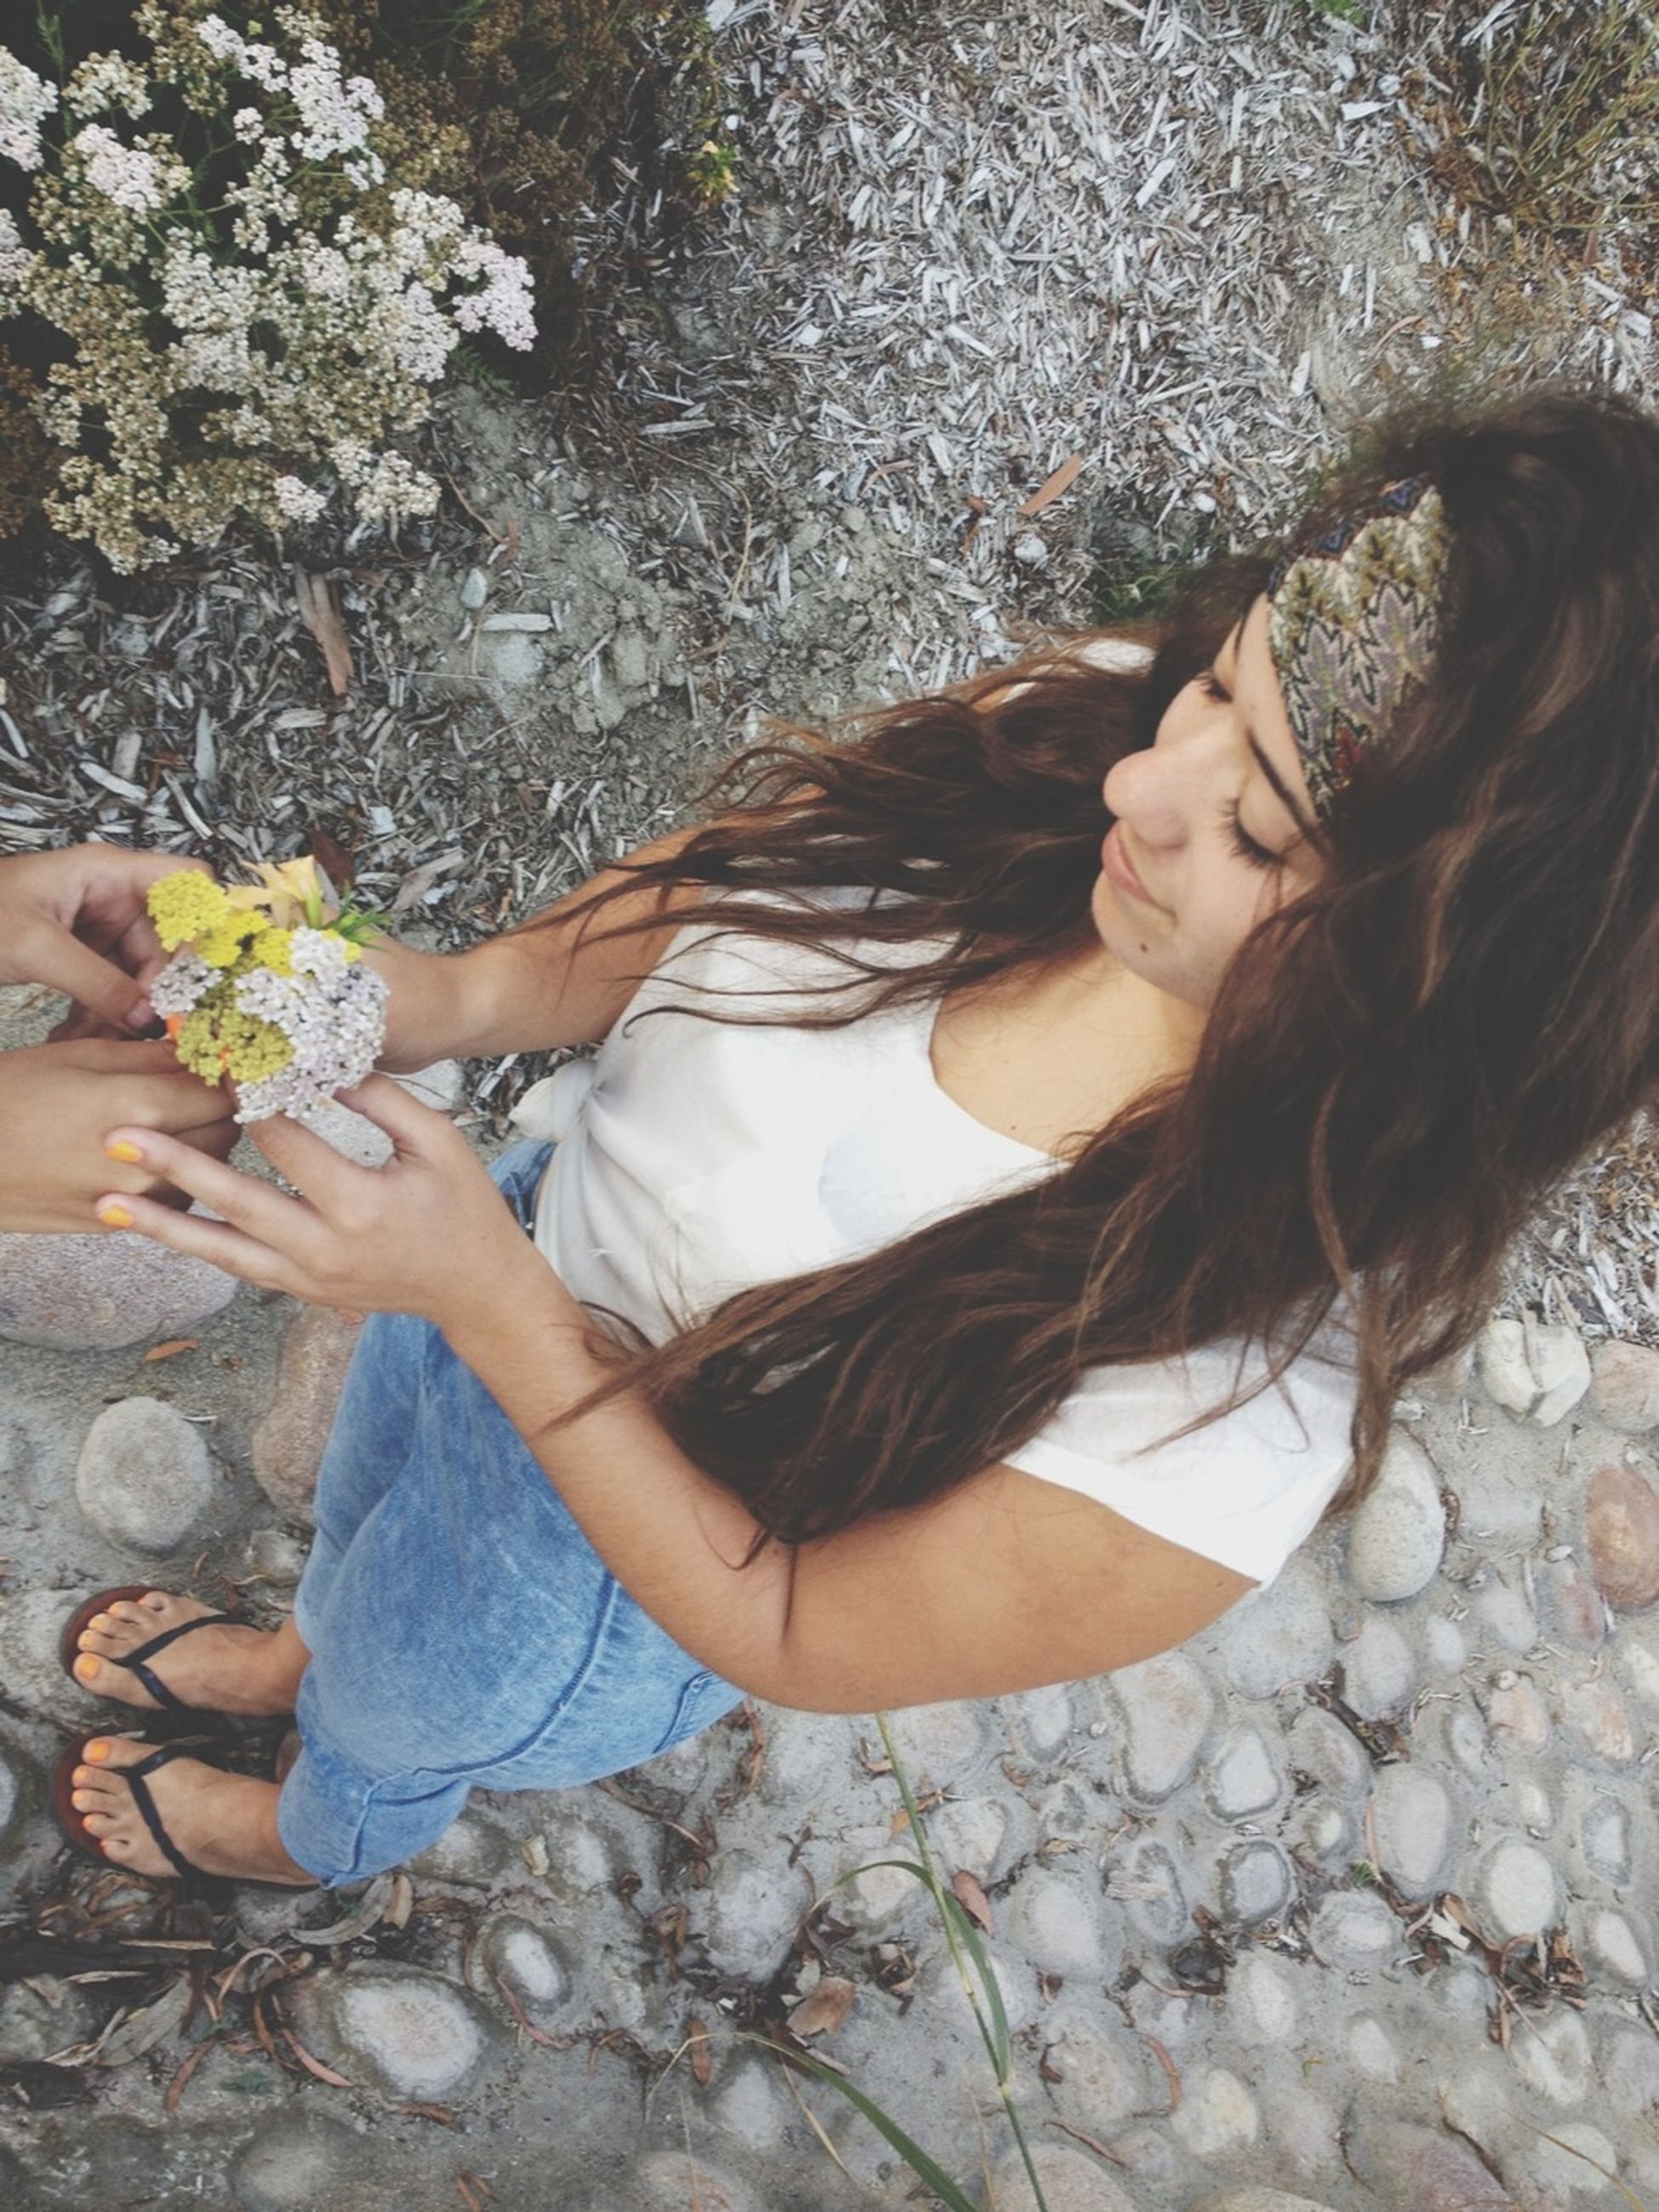 lifestyles, leisure activity, casual clothing, young women, person, young adult, standing, flower, long hair, high angle view, full length, girls, day, nature, water, outdoors, sitting